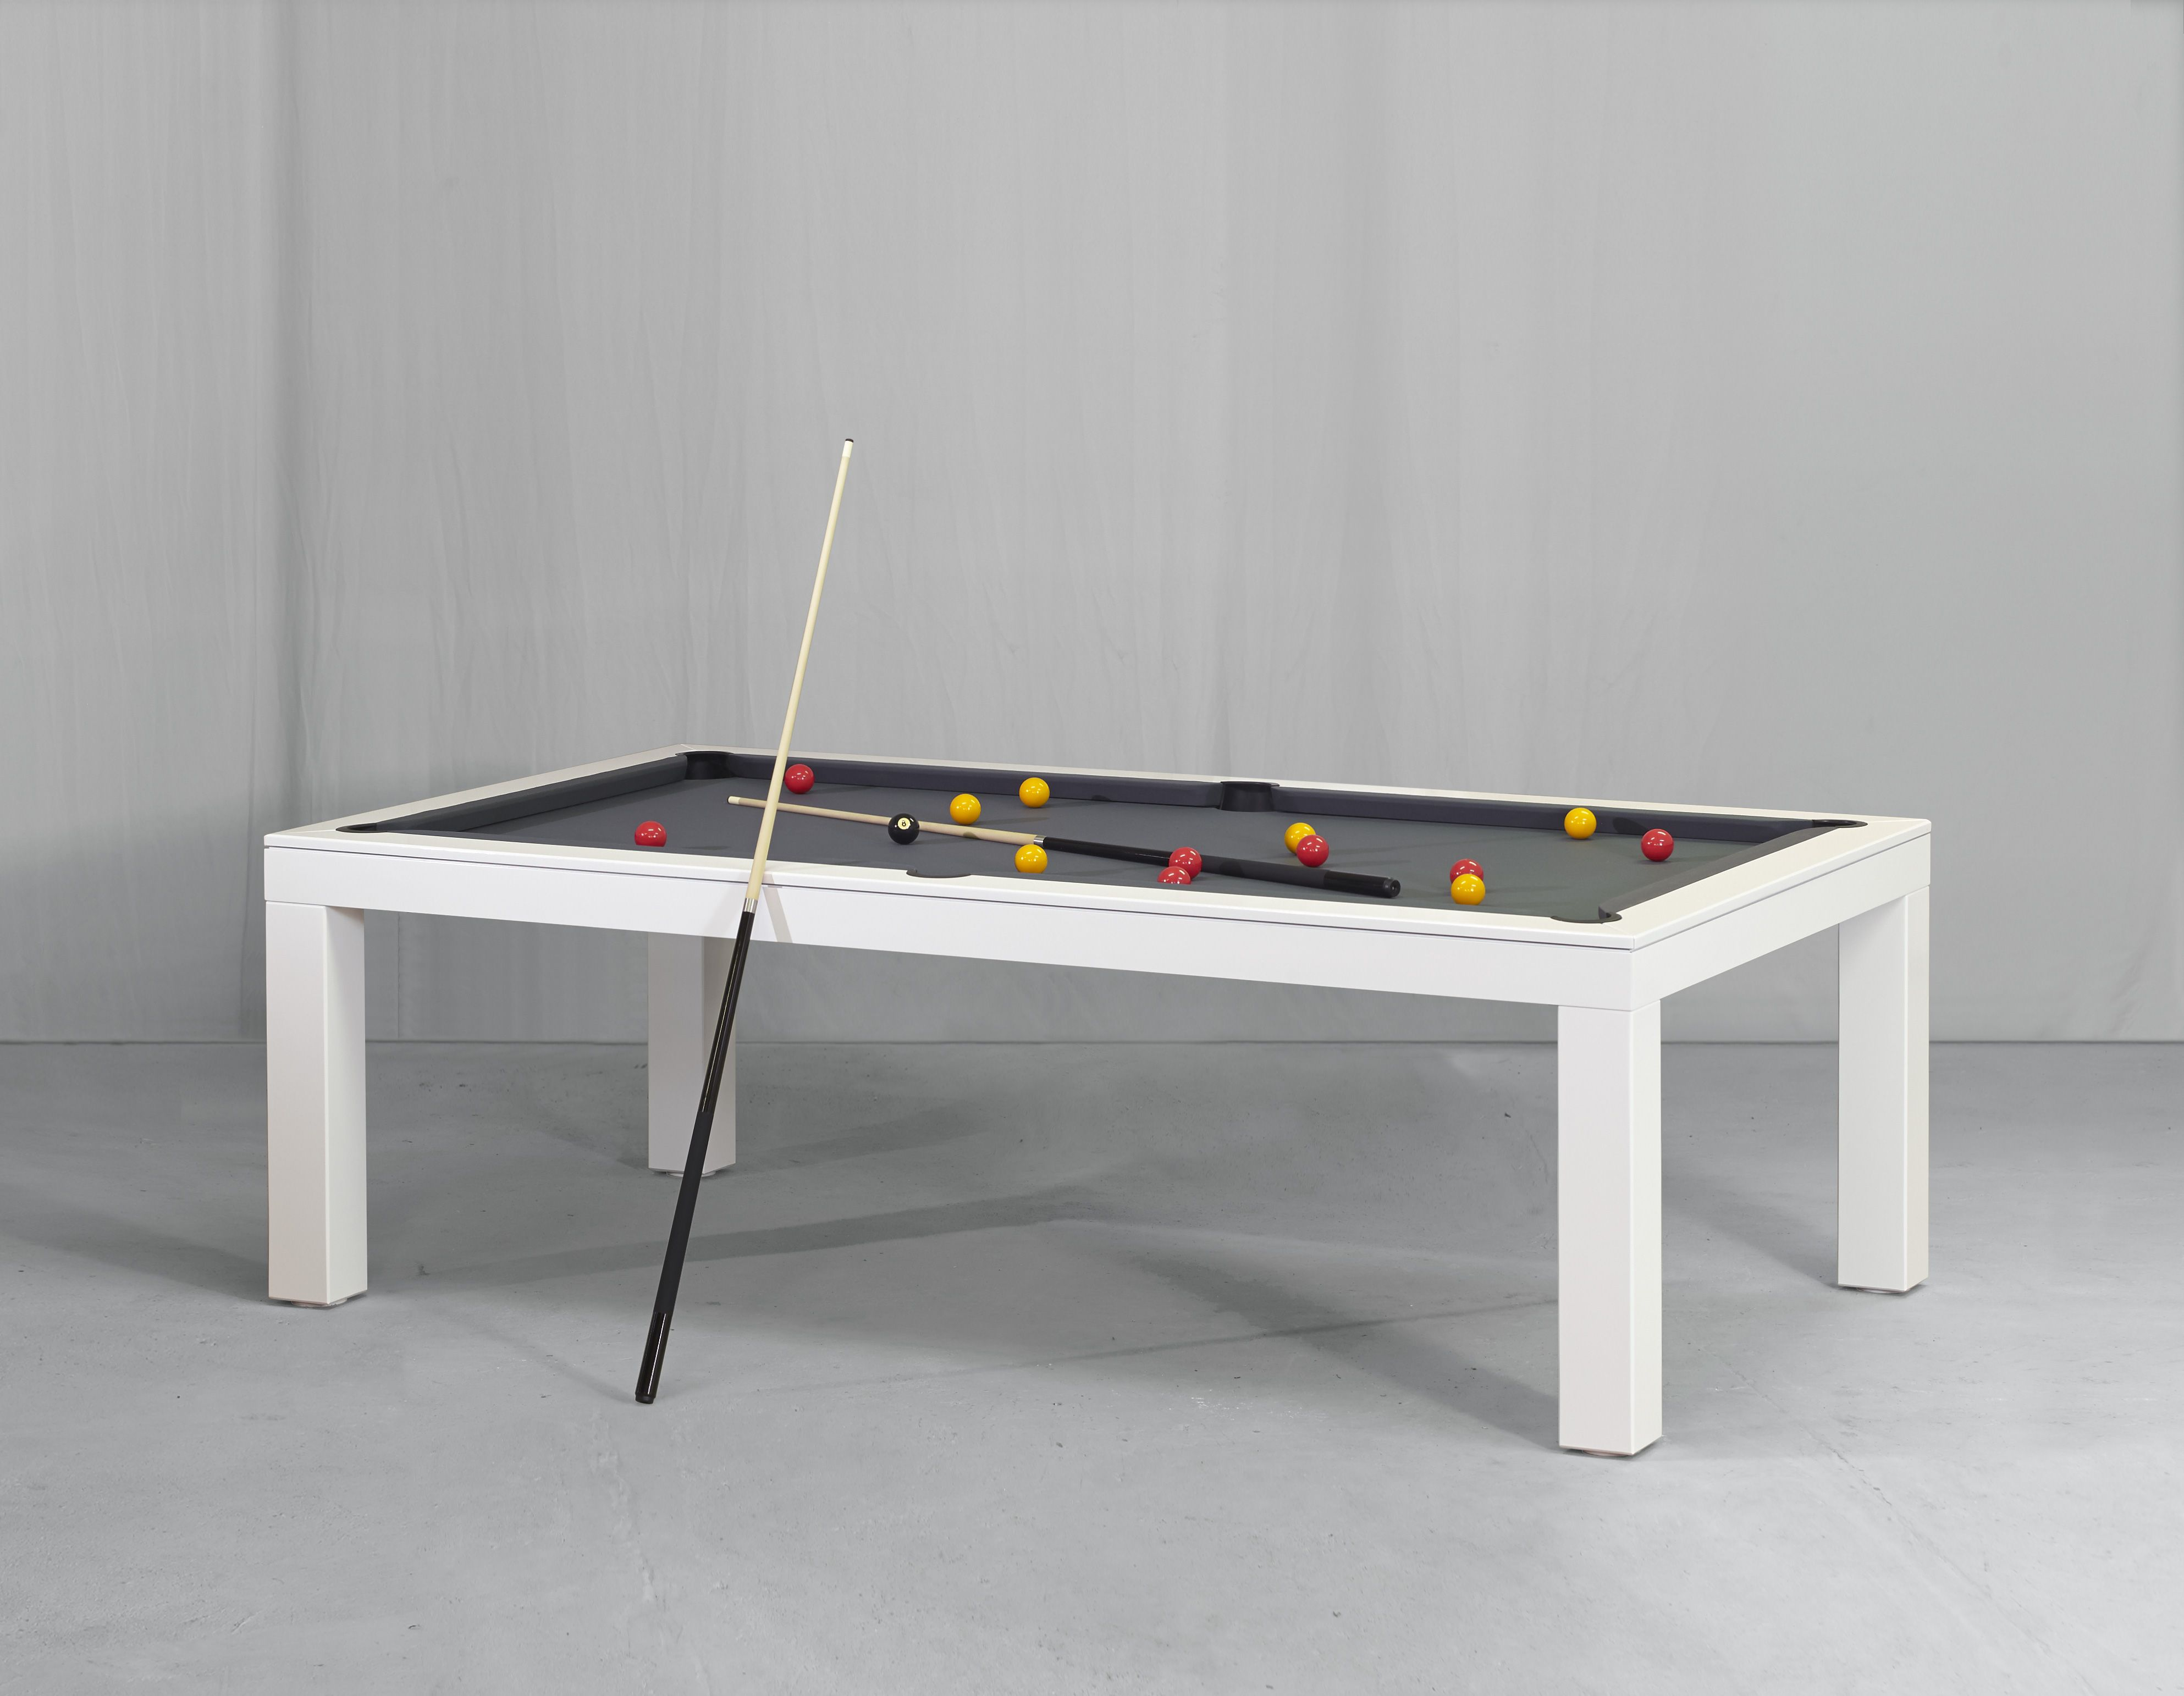 Luxury Pool Table By Vision Billiards That Converts Into A Dining